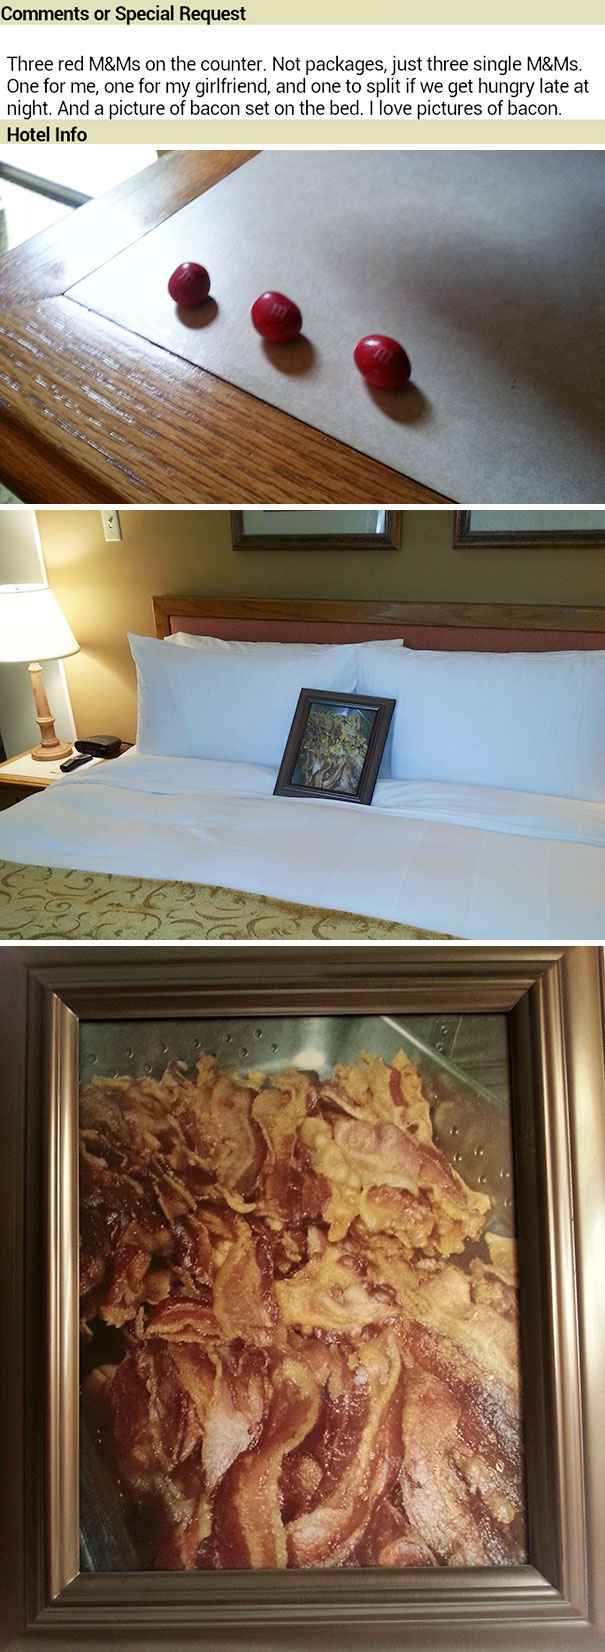 creative-funny-hotel-staff-requests-1